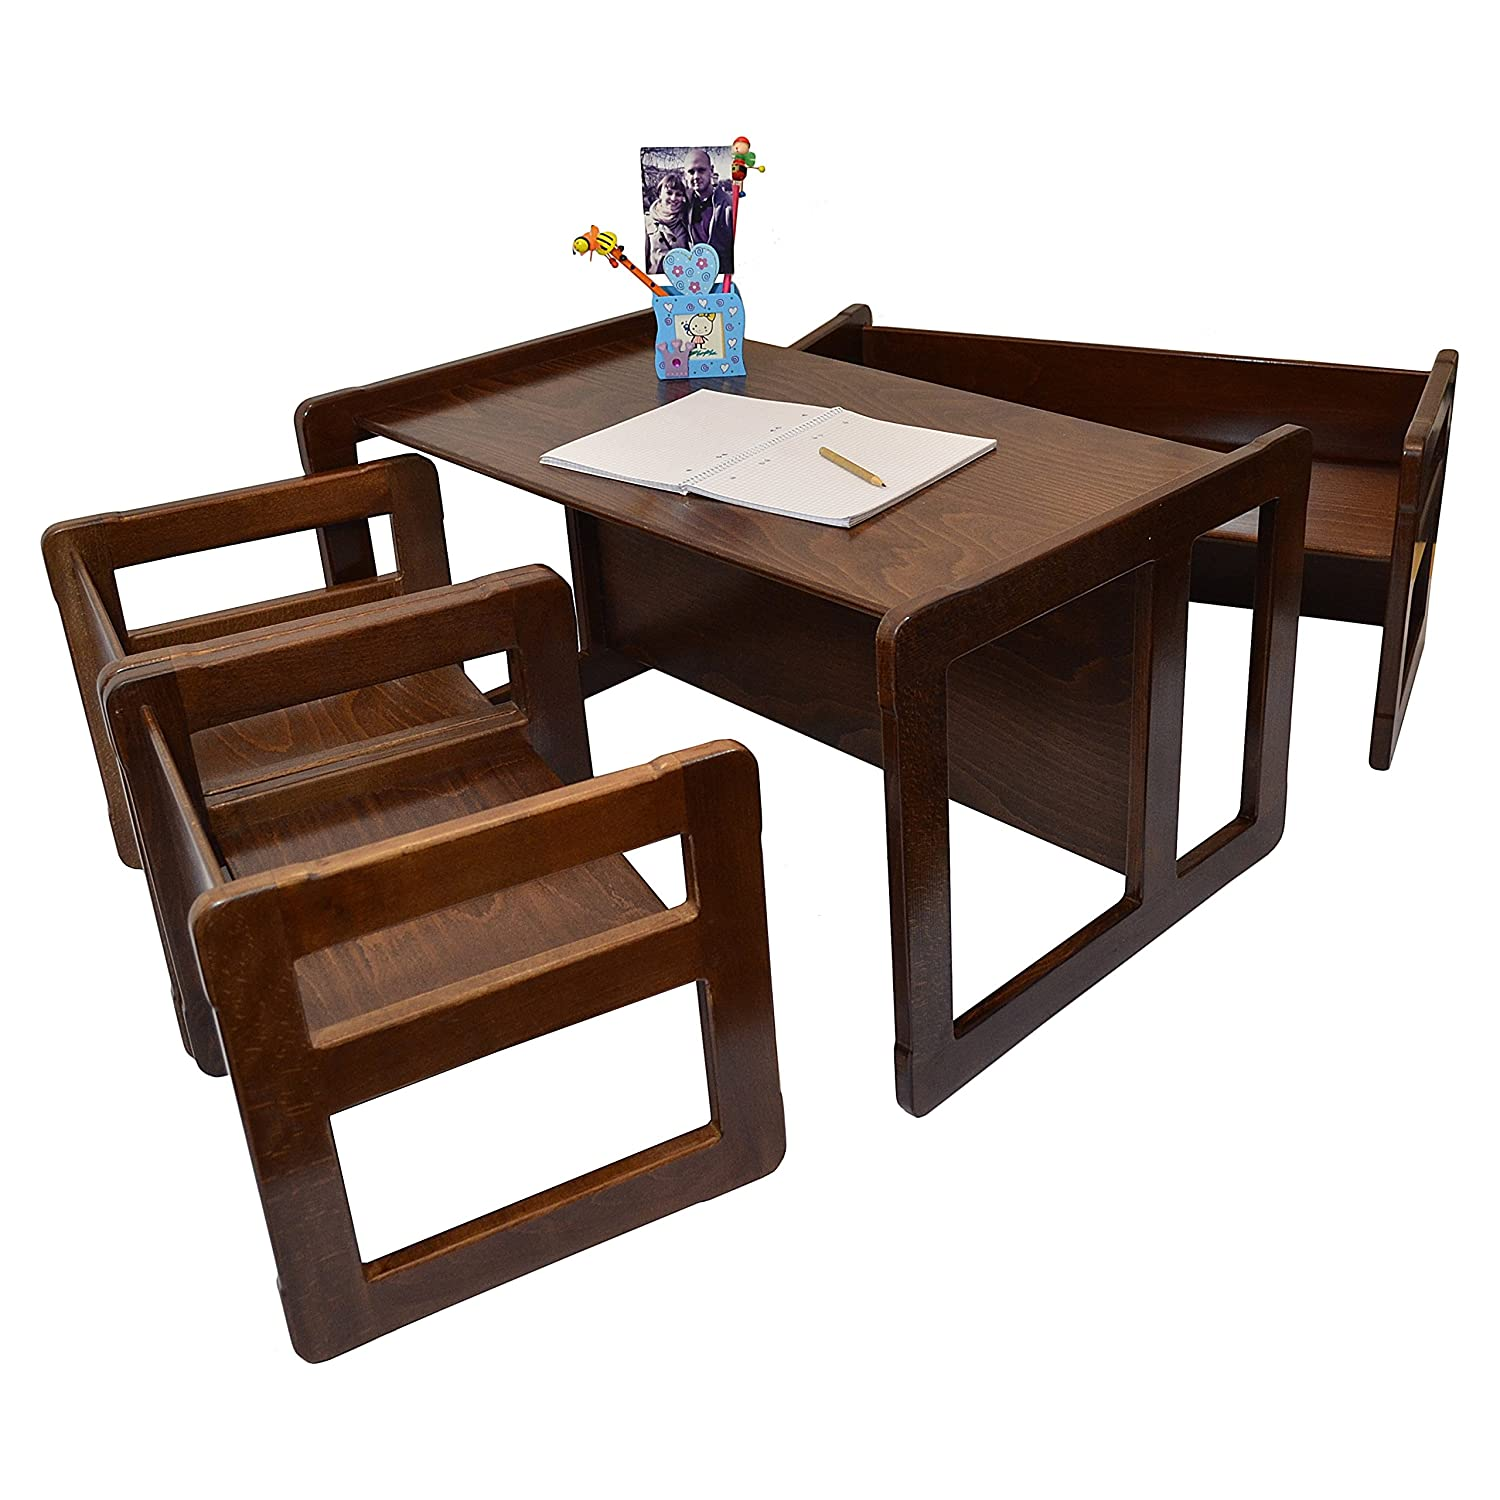 3 in 1 Adults Multifunctional Nest of Coffee Tables Set of 4 or Childrens Multifunctional Furniture Set of 4 Dark Stained Two Small Chairs or Tables and One Small Bench or Table and One Large Bench or Table Beech Wood